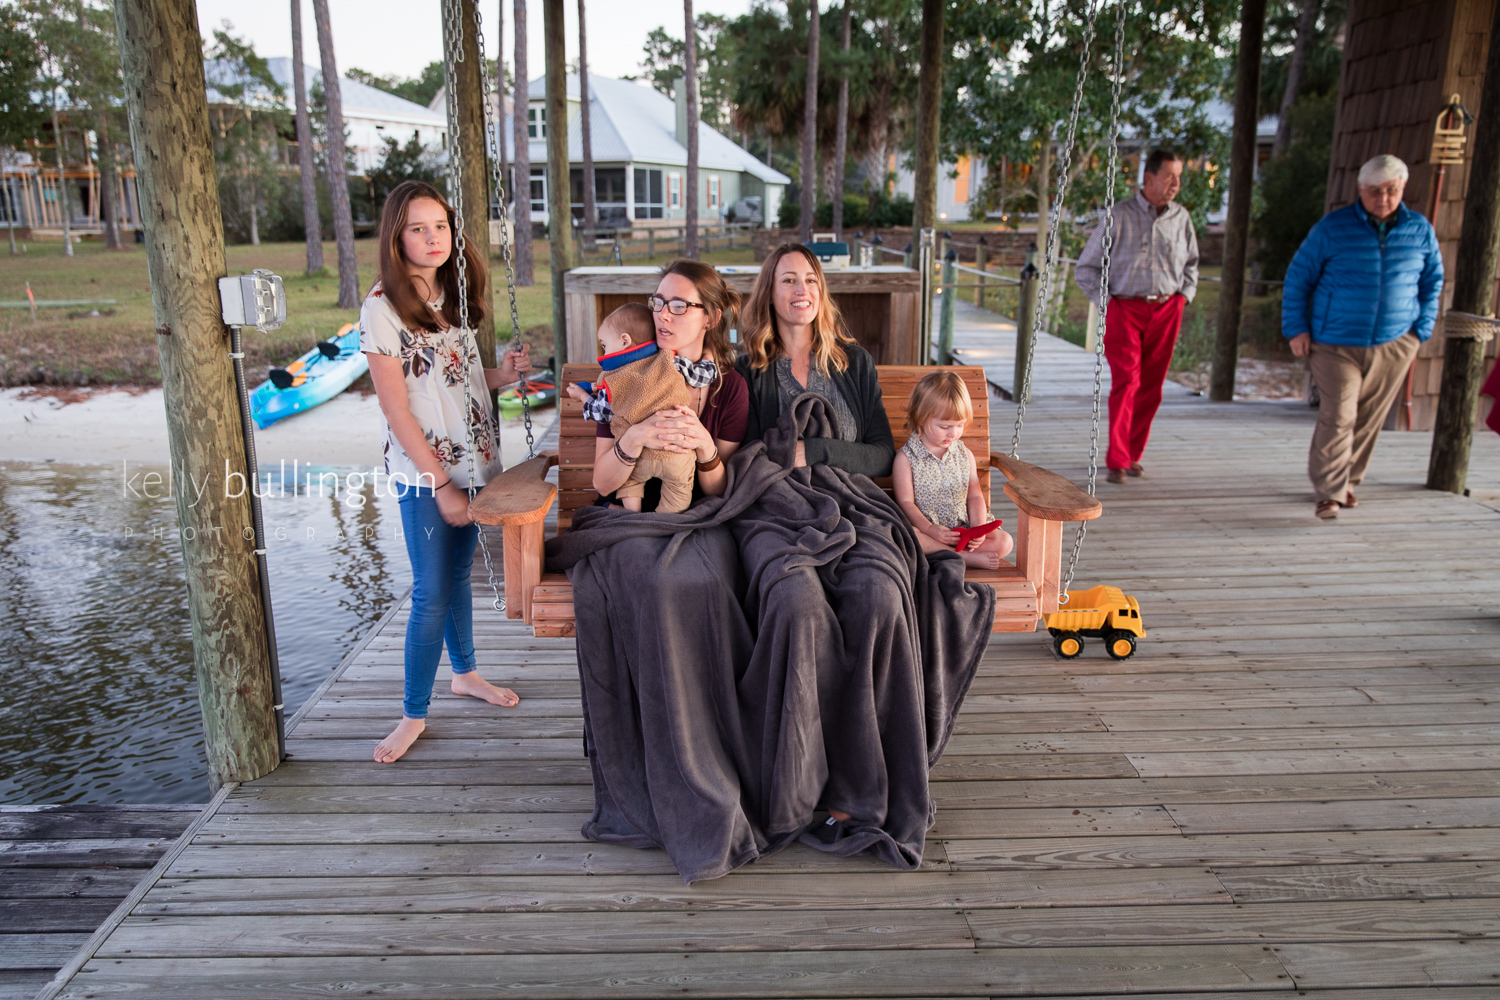 Fairhope_Family_Kelly_Bullington_Photography-54.jpg